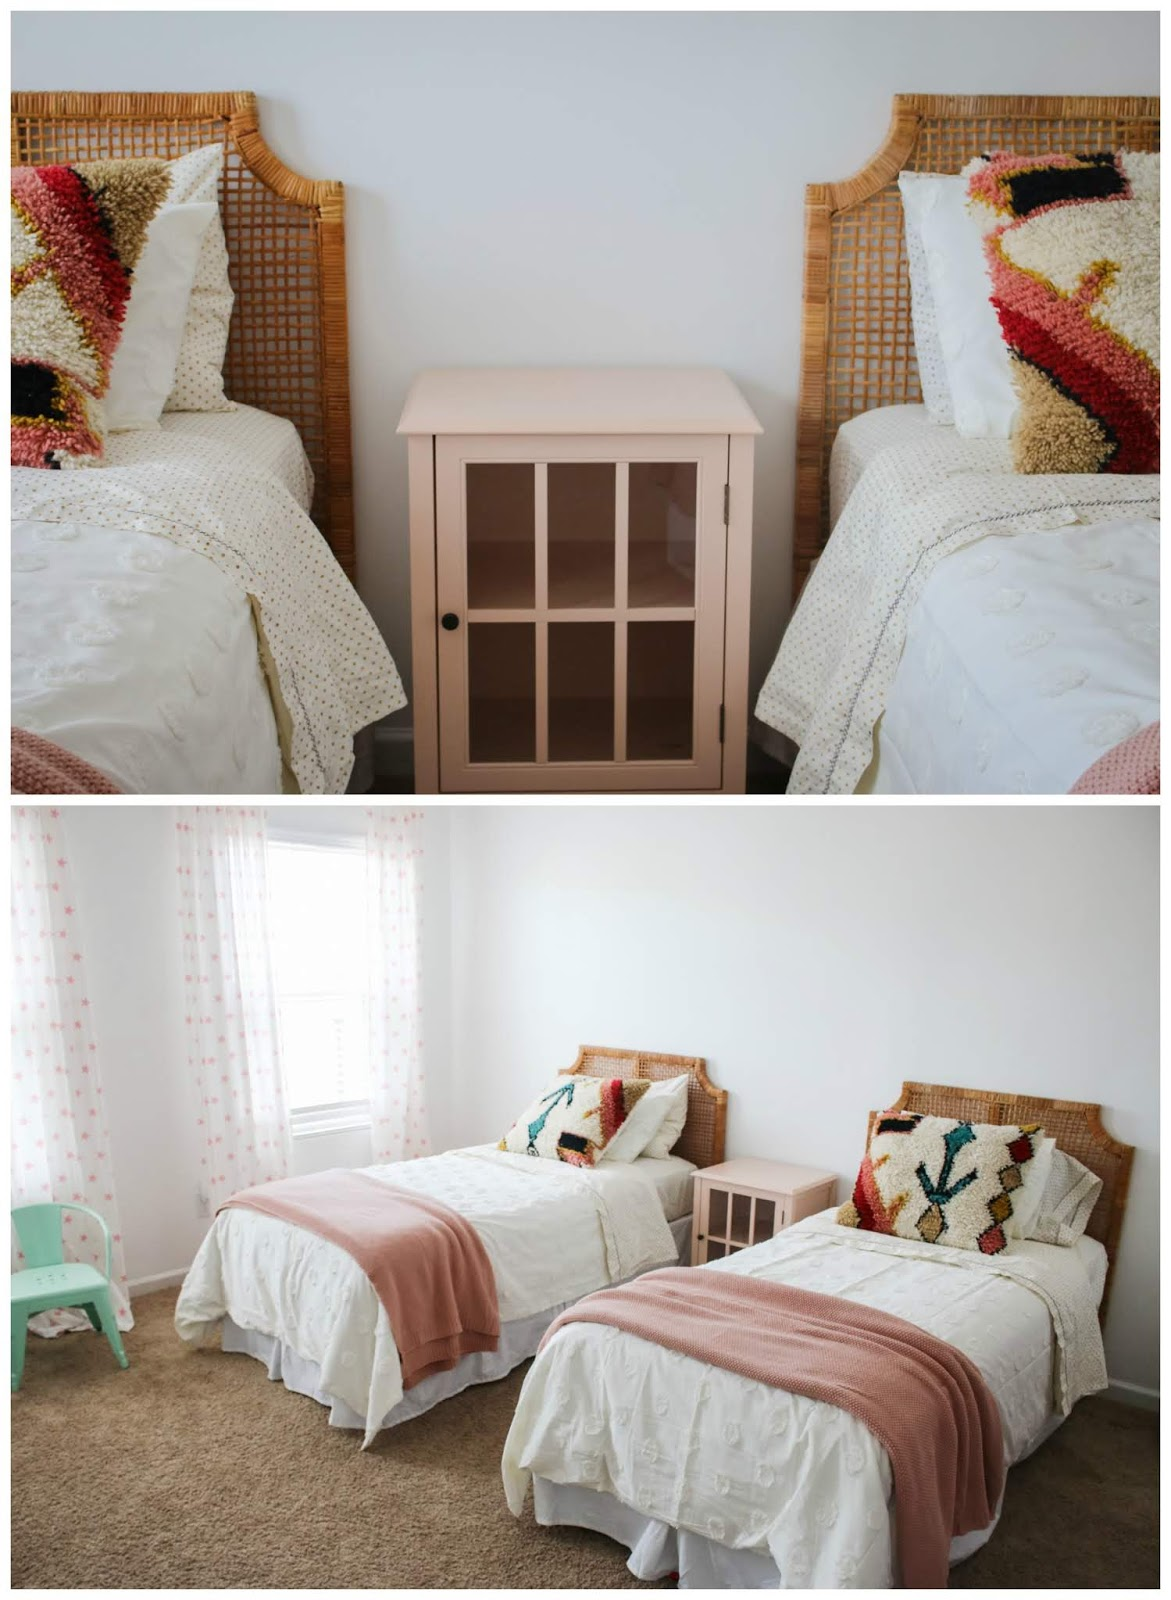 rattan twin headboards with boho bedding